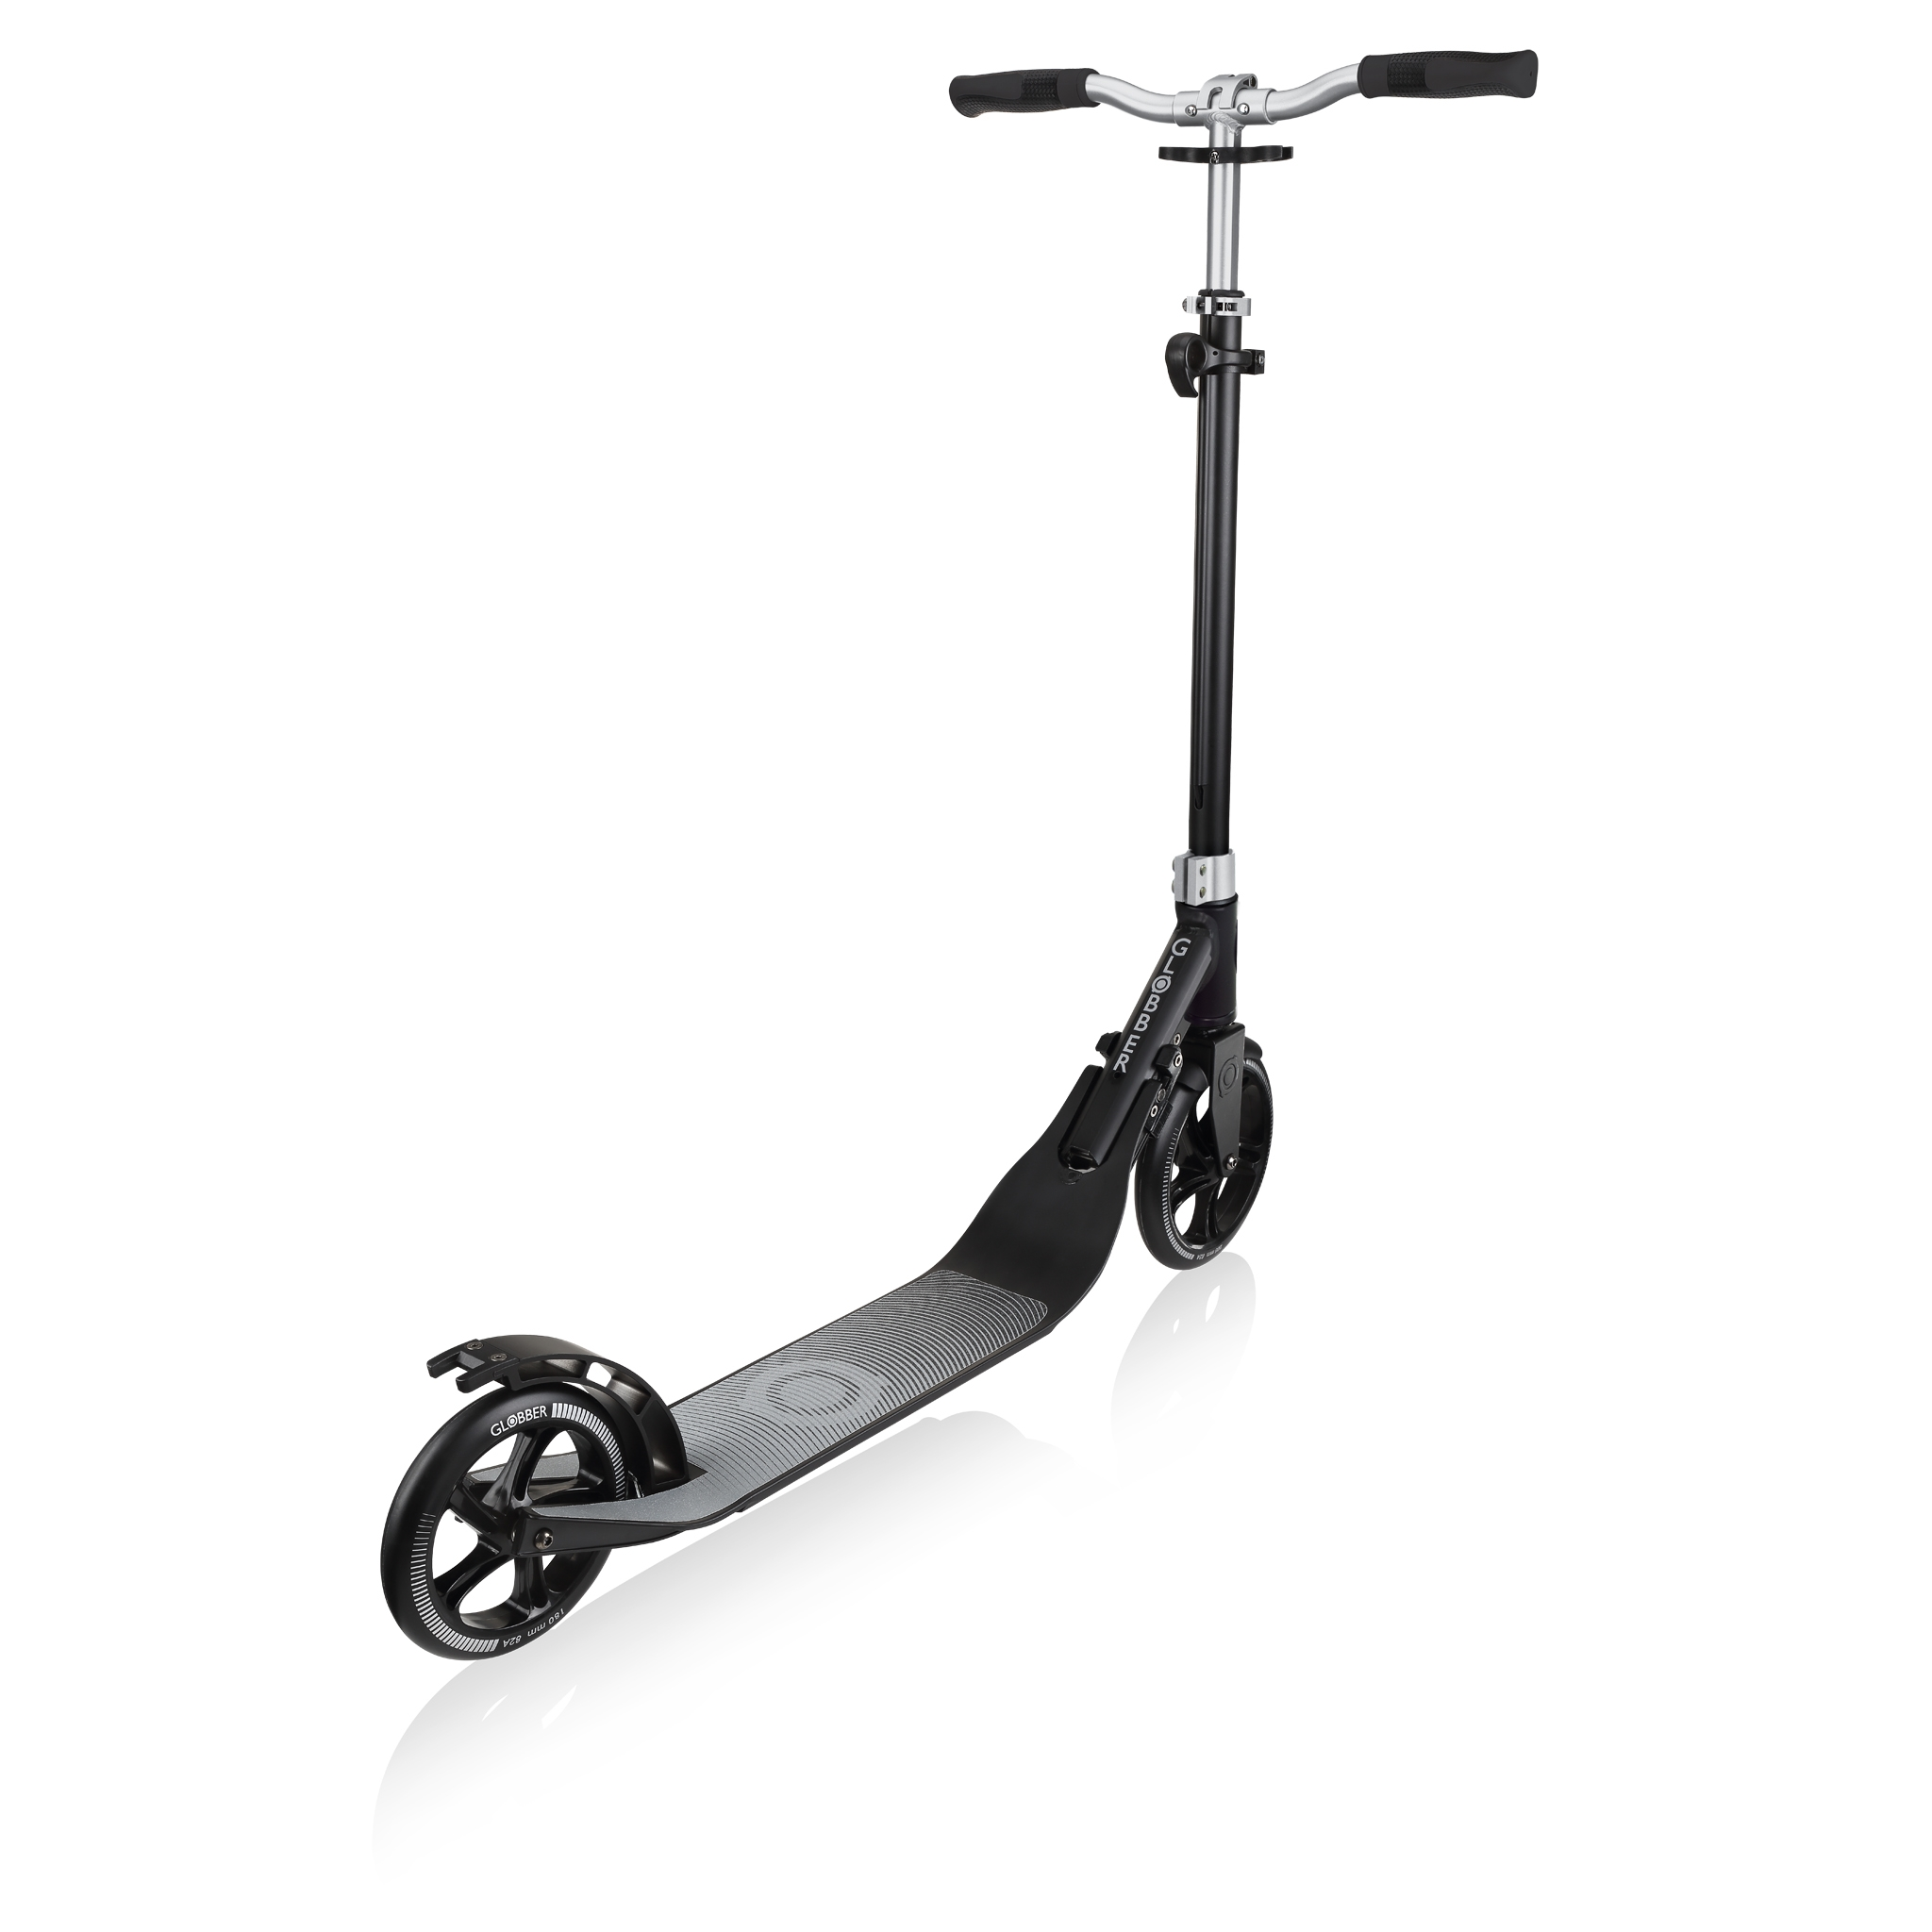 Globber-ONE-NL-205-180-DUO-2-wheel-foldable-scooter-for-adults-with-foldable-handlebar-lead-grey